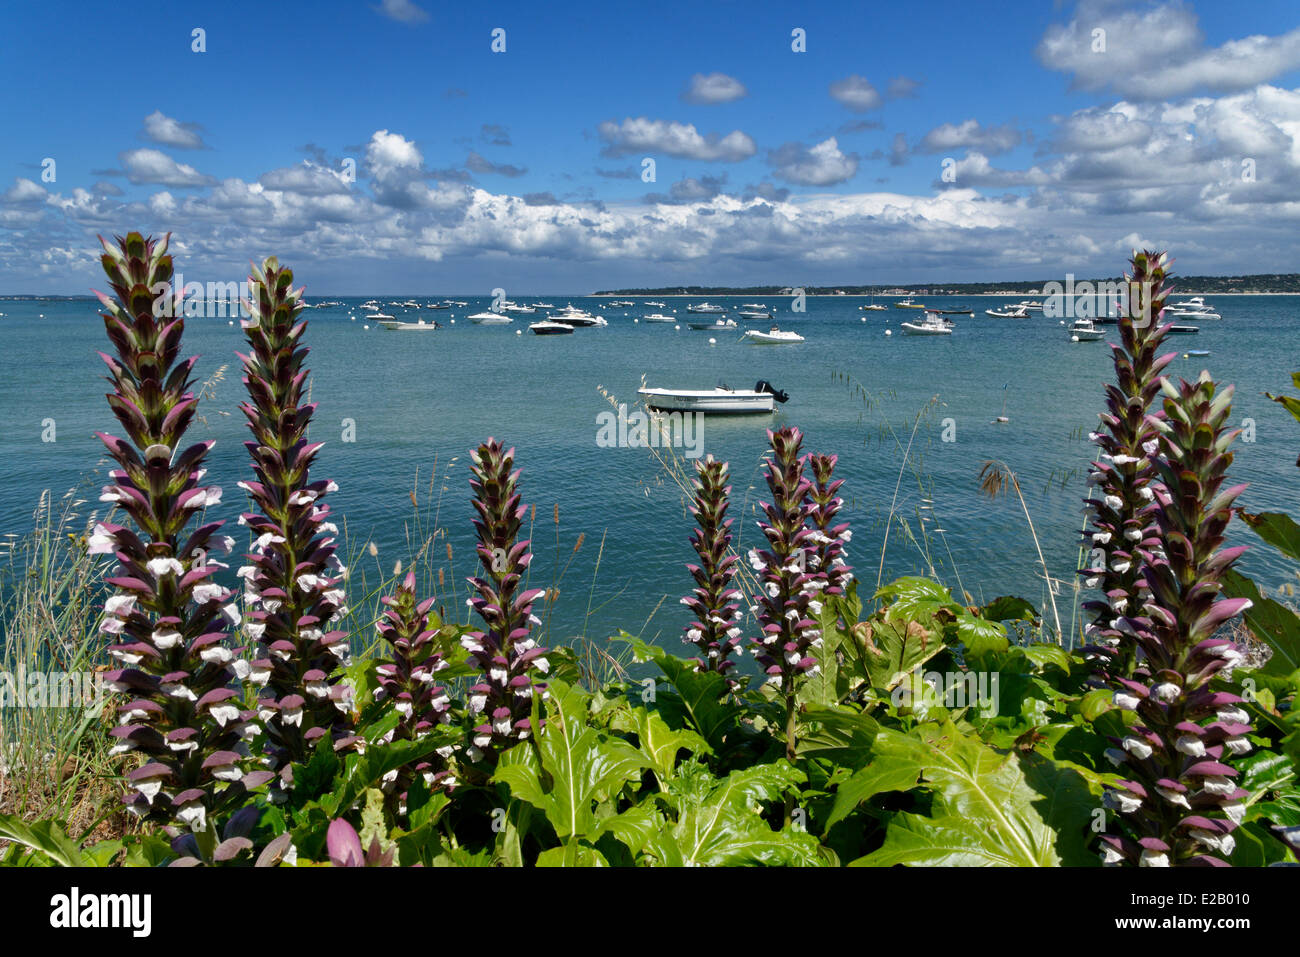 France, Gironde, Arcachon Bay, Cap Ferret, coastal vegetation, flowers on the coast with boats in the background - Stock Image